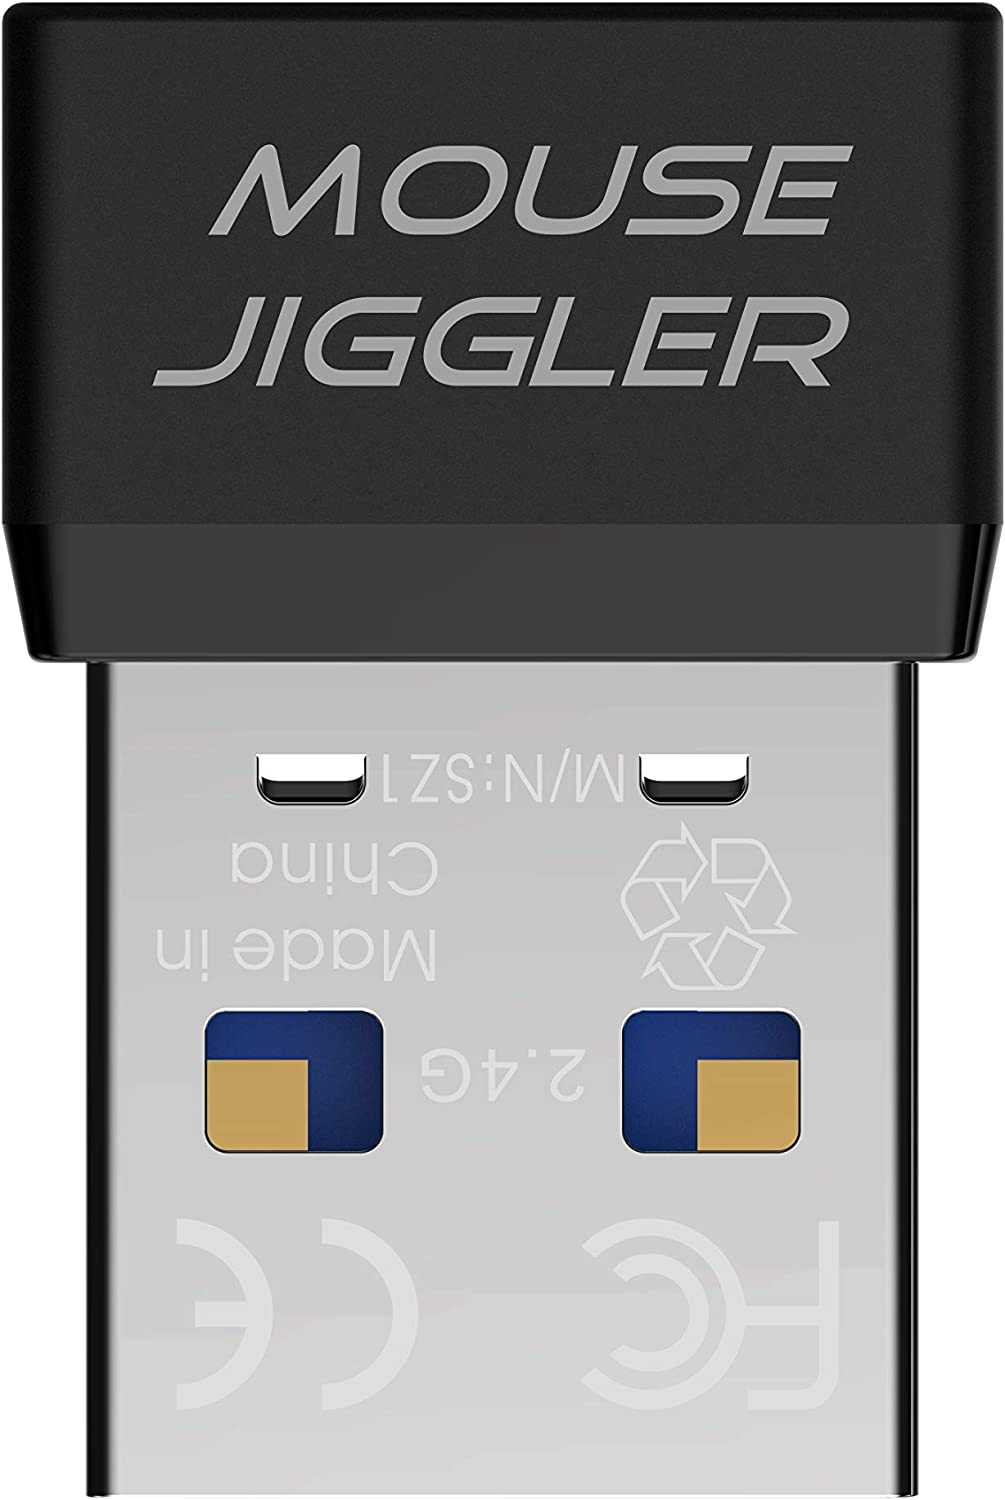 USB Mouse Jiggler Automatic Computer Mouse Mover Jiggler USB Port for Computer Laptop- Keeps Computer Awake,Simulate Mouse Movement to Prevents Computer from Going into Sleep,Plug-and-Play